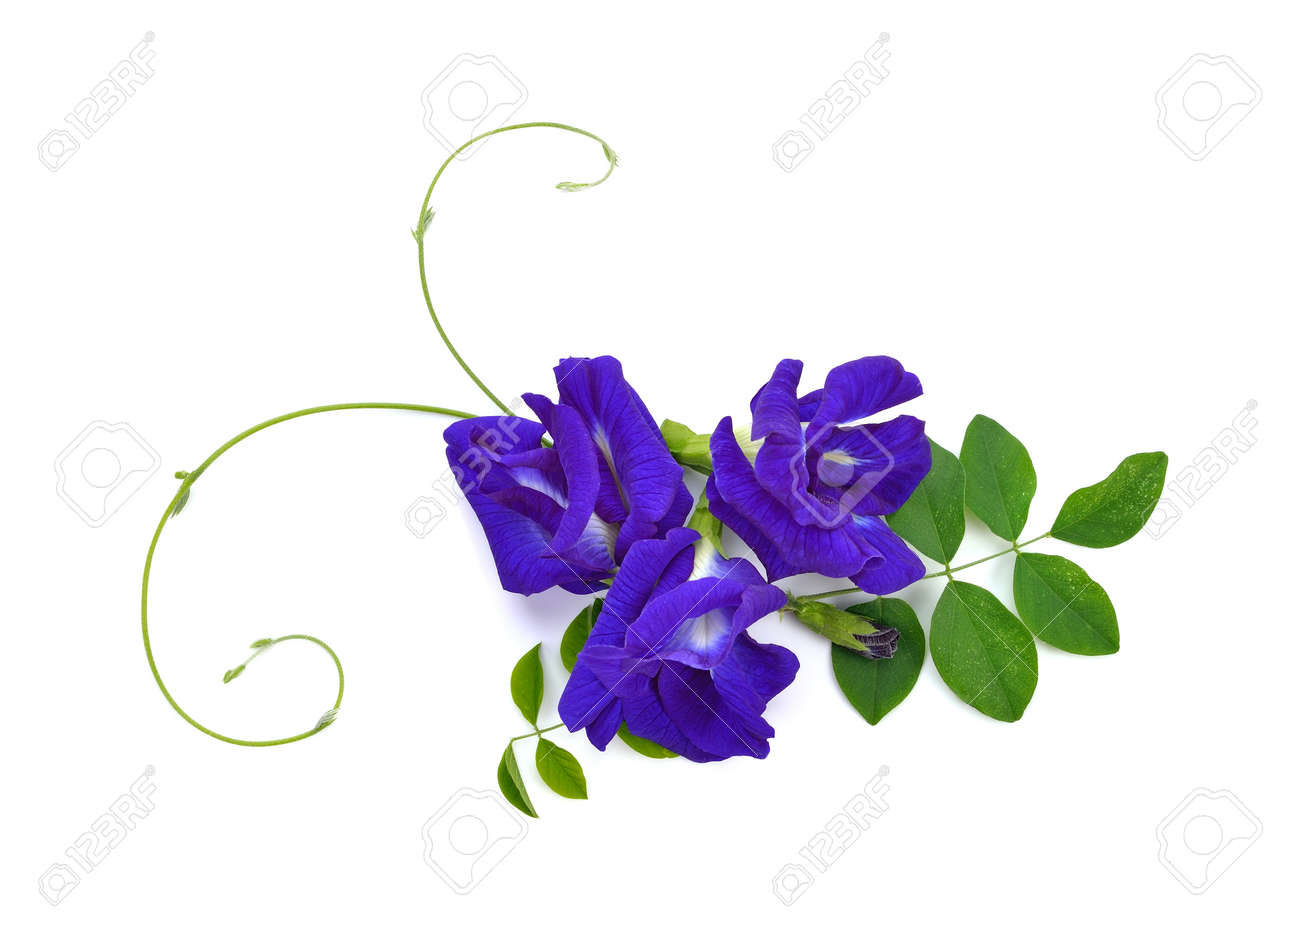 Butterfly Pea isolated on white background - 169847563